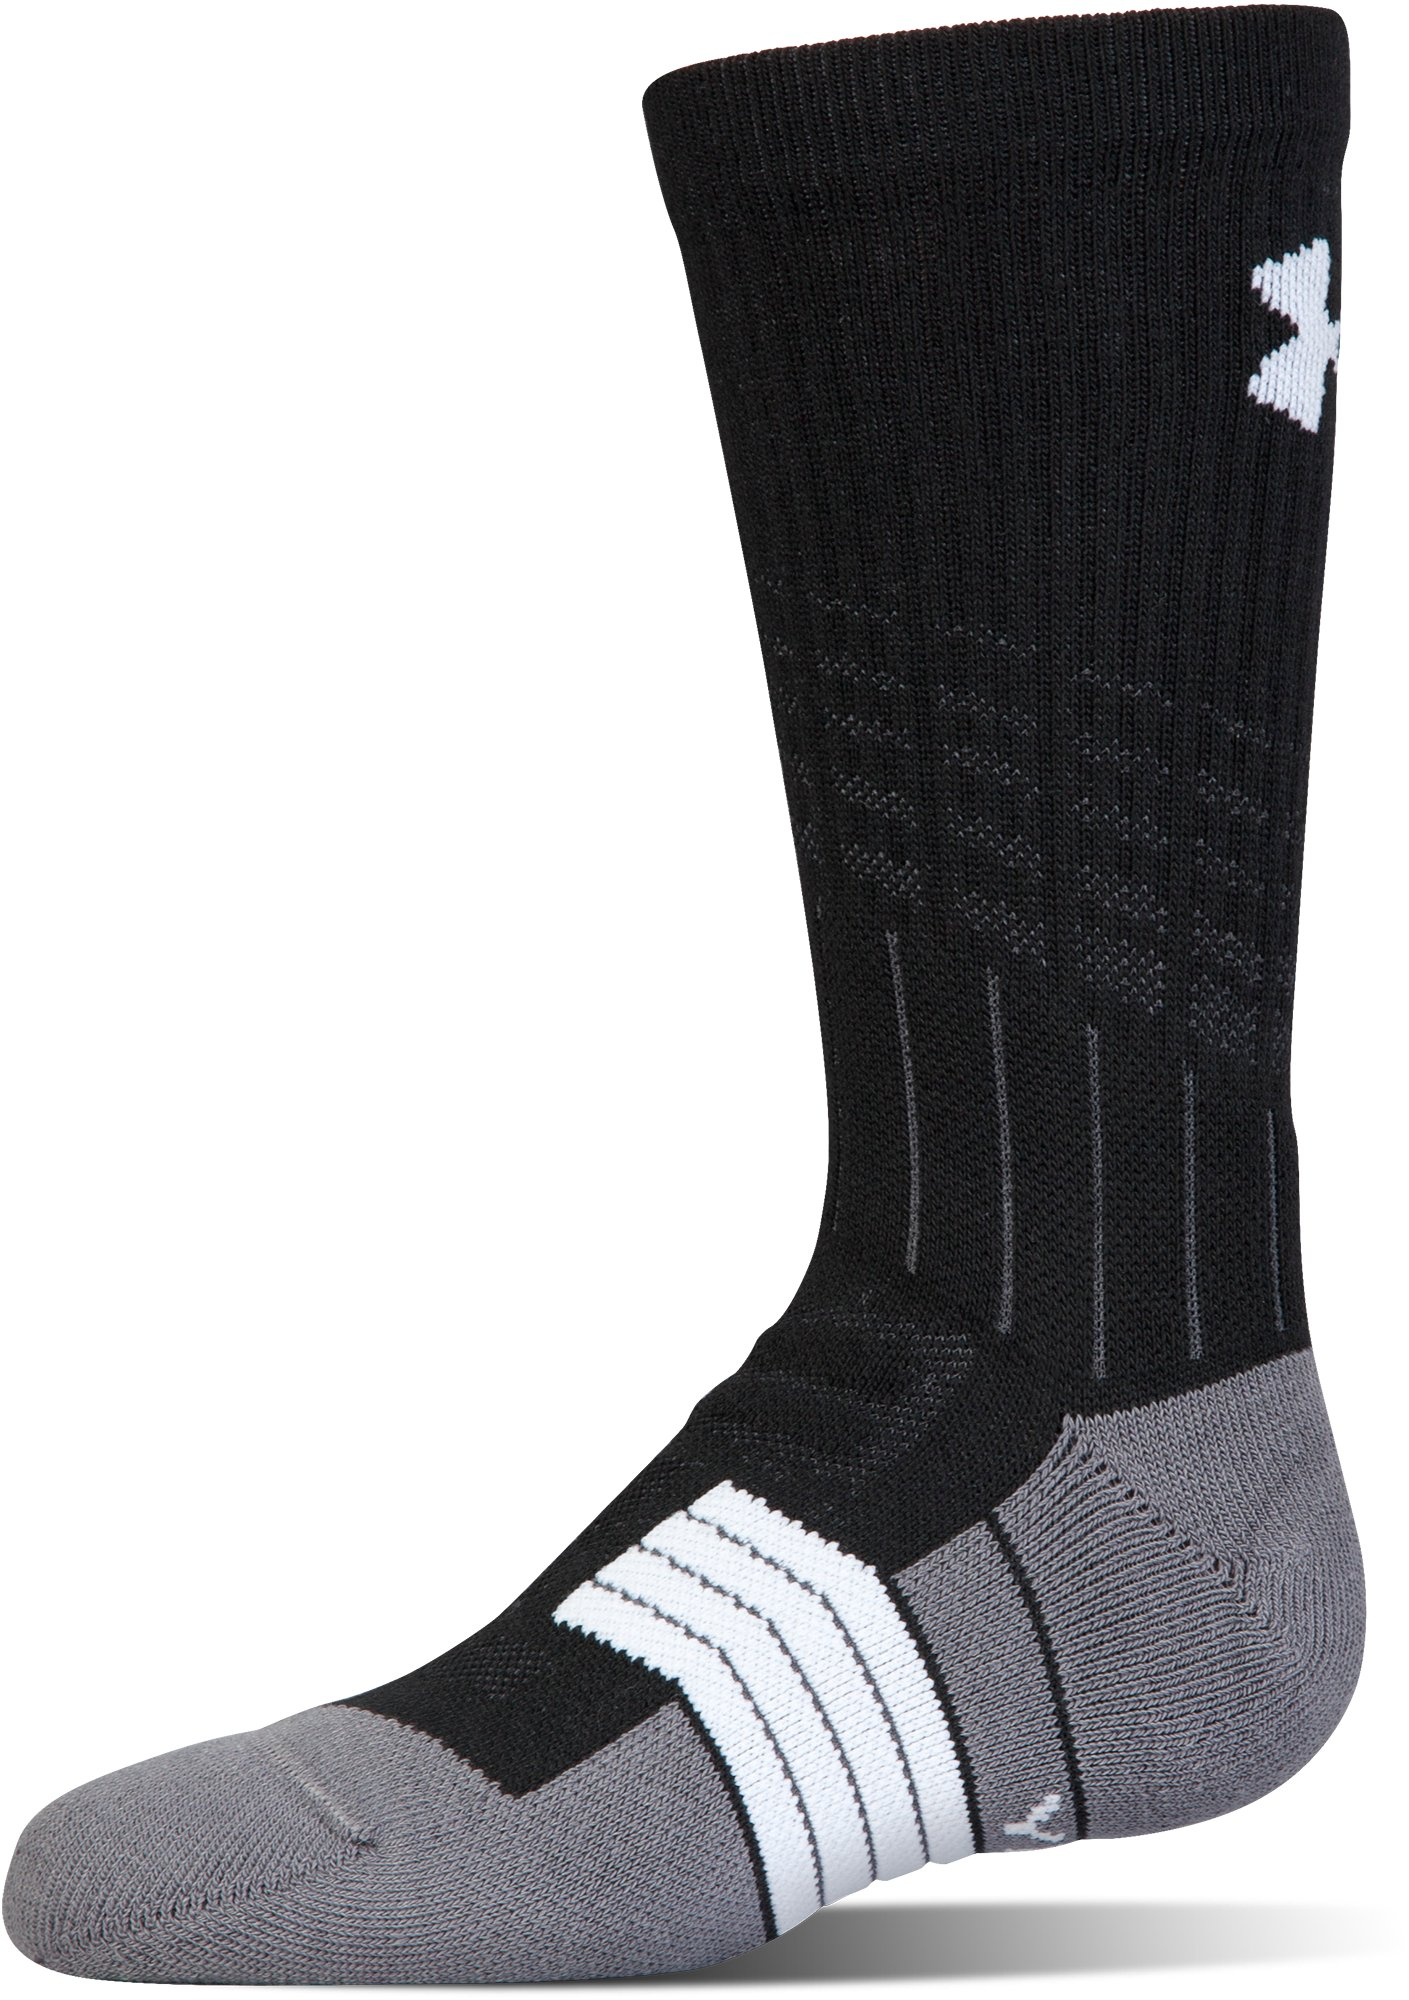 Boys' UA Unrivaled Crew Socks, Black , undefined